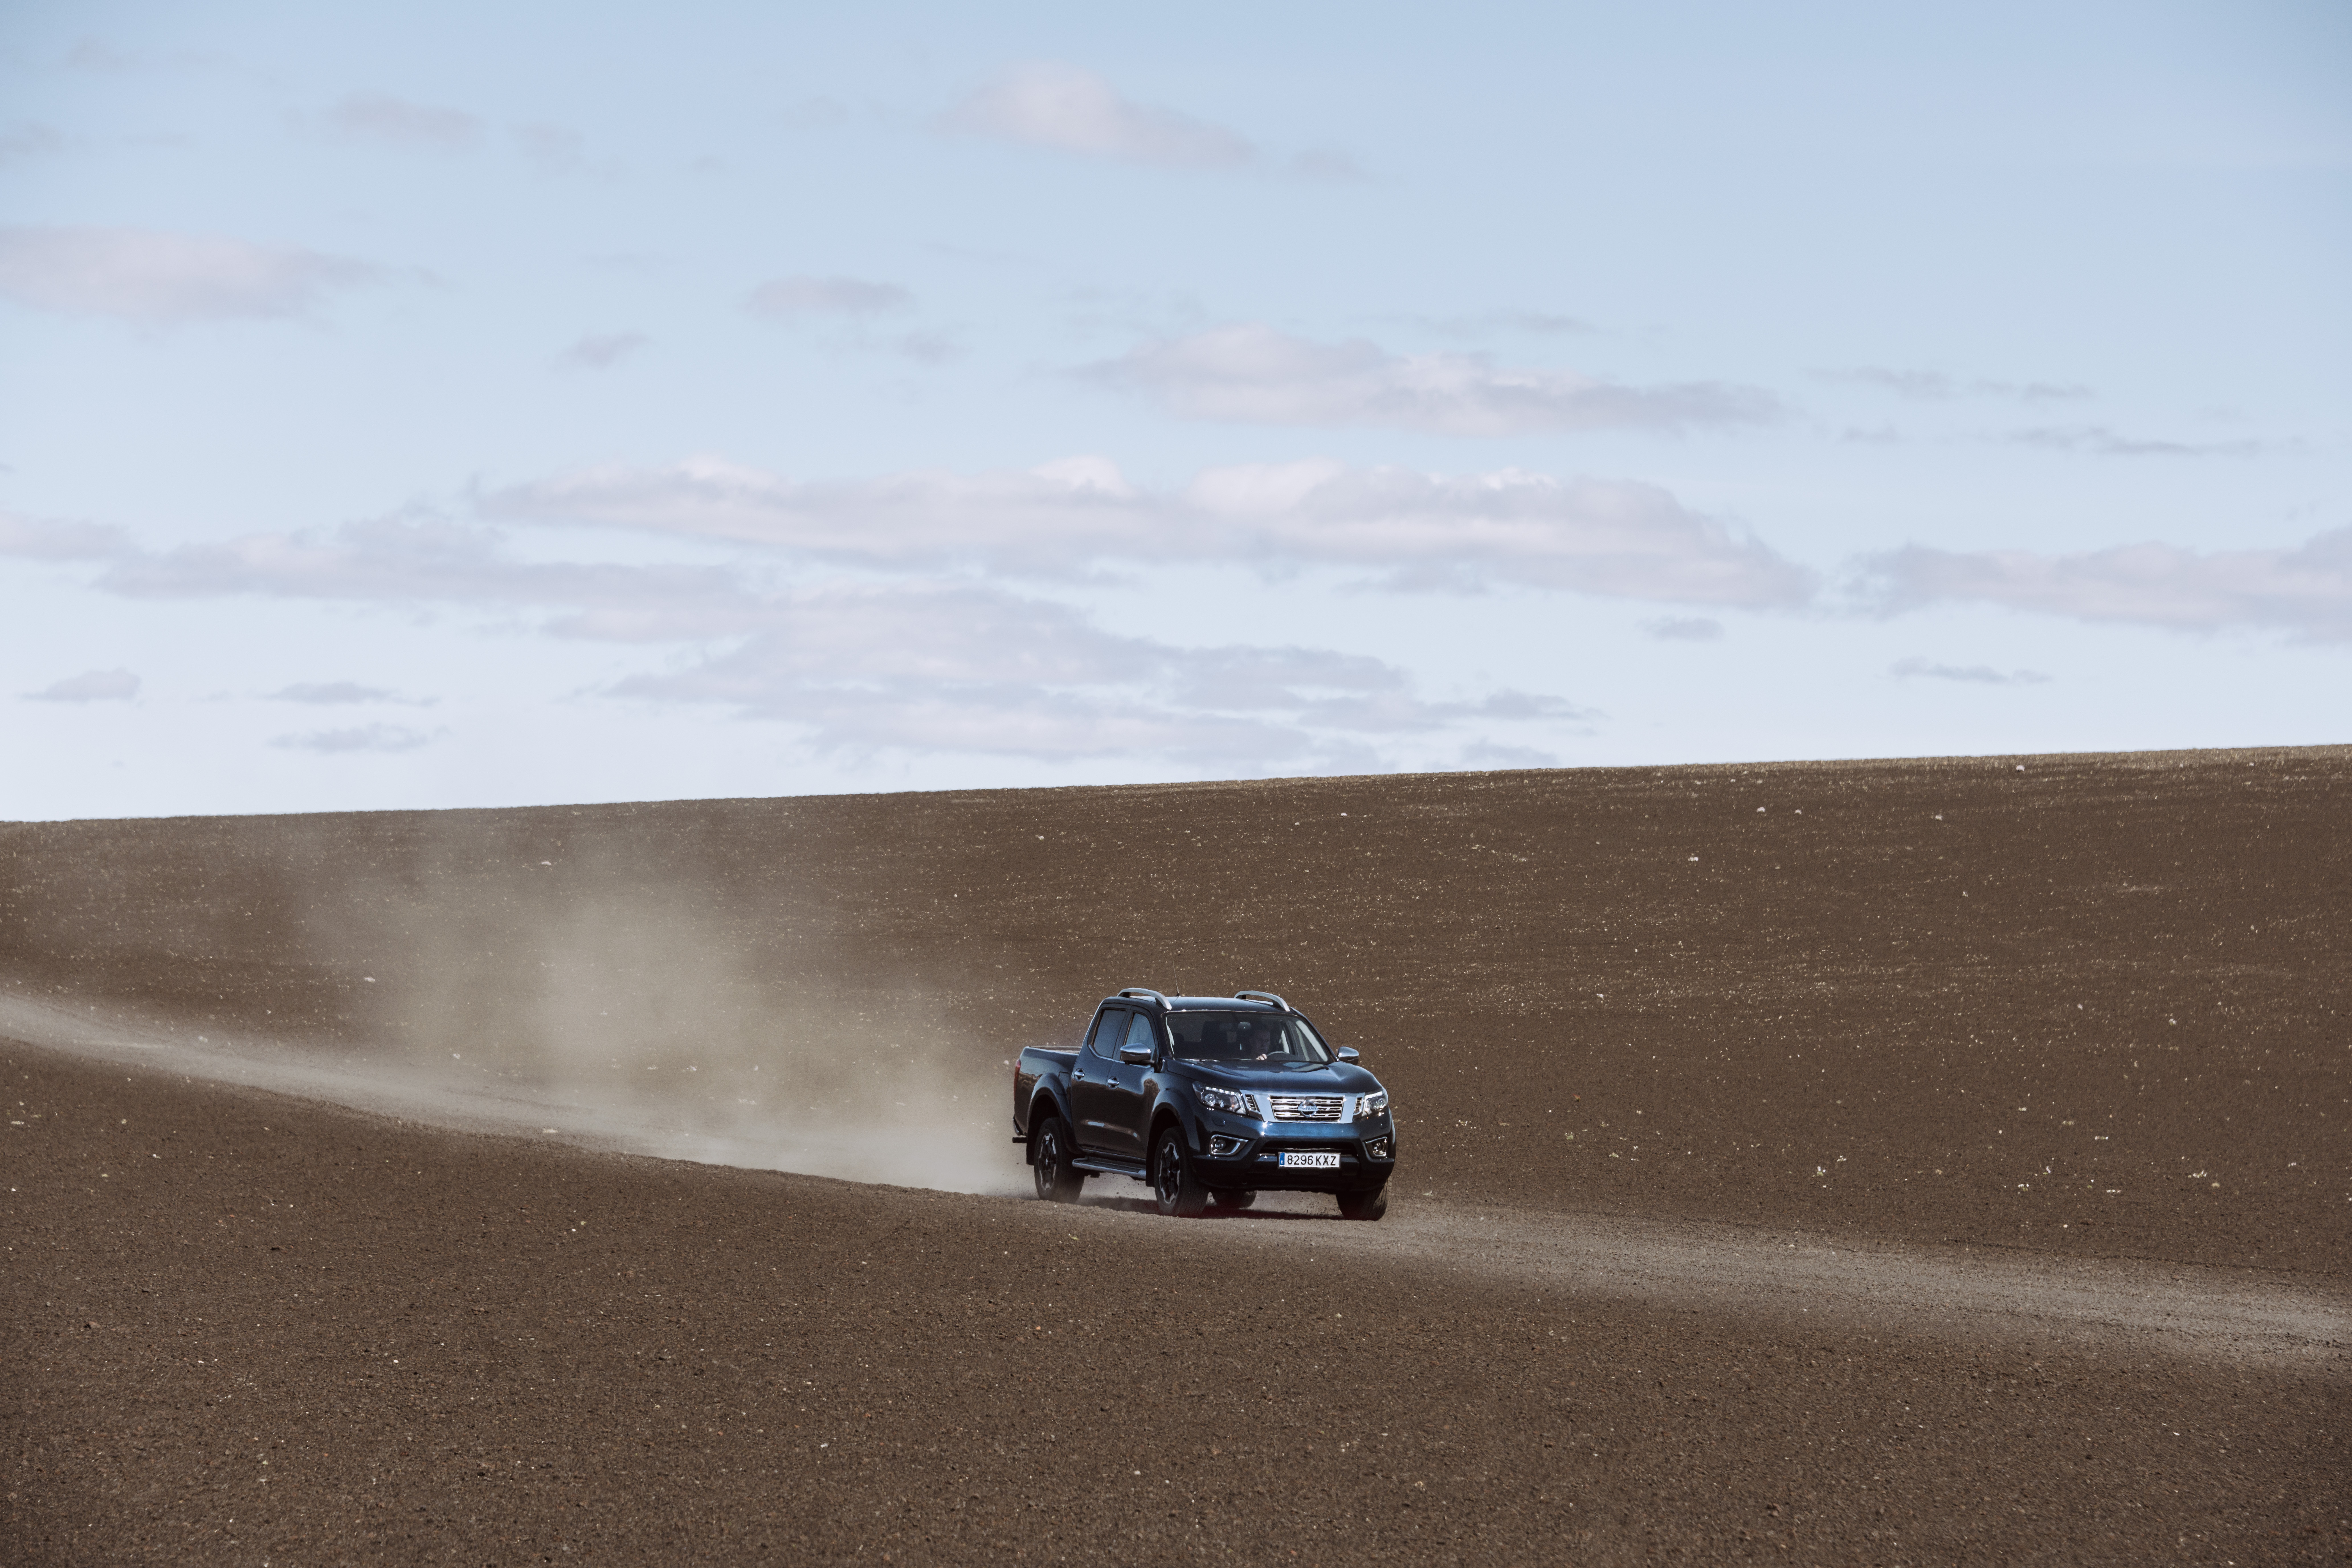 Multiple off-road driving modes help the Navara tackle all terrains